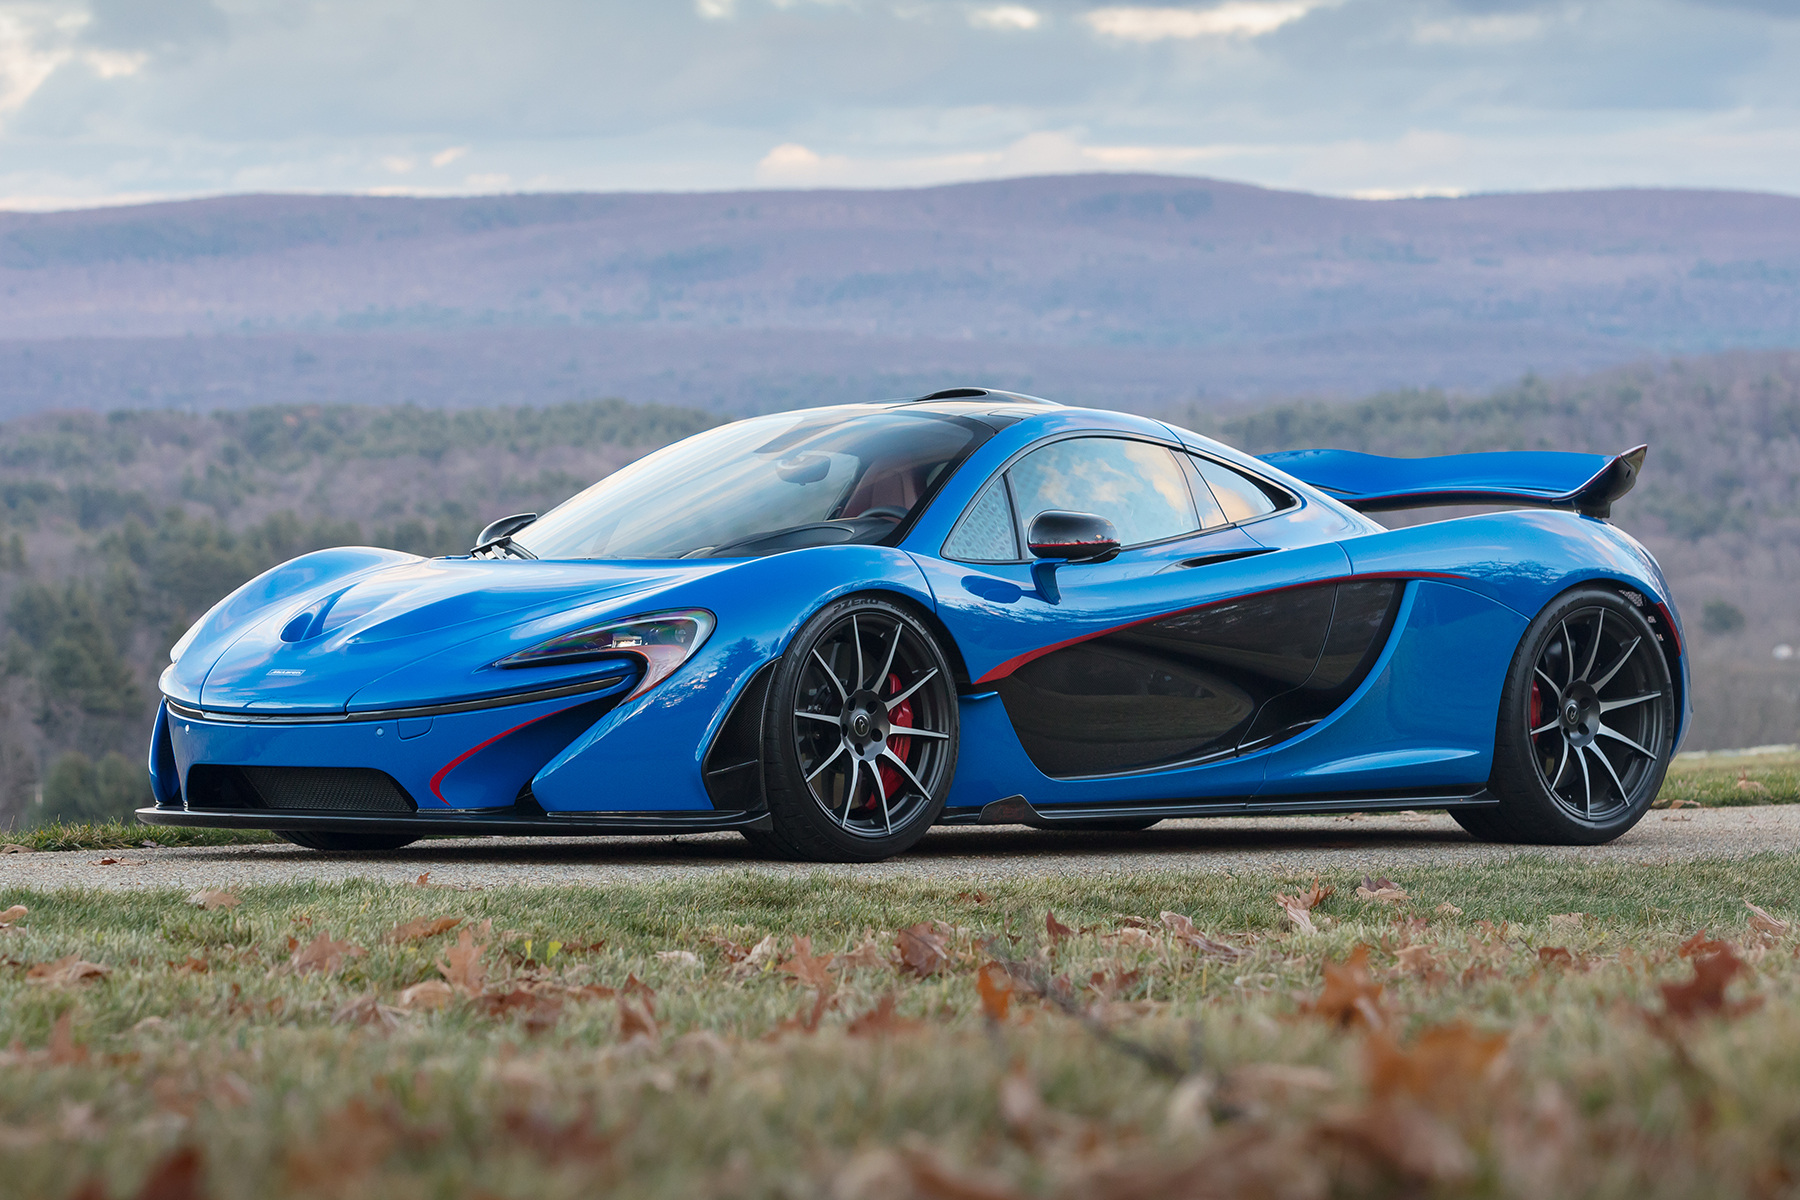 McLaren CEO Mark Flewitt said that the company would introduce a new plug-in hybrid car platform next spring. The first vehicle will zap from zero to 60 mph (97 km/h) in 2.3 seconds and hit the sales in early 2021.